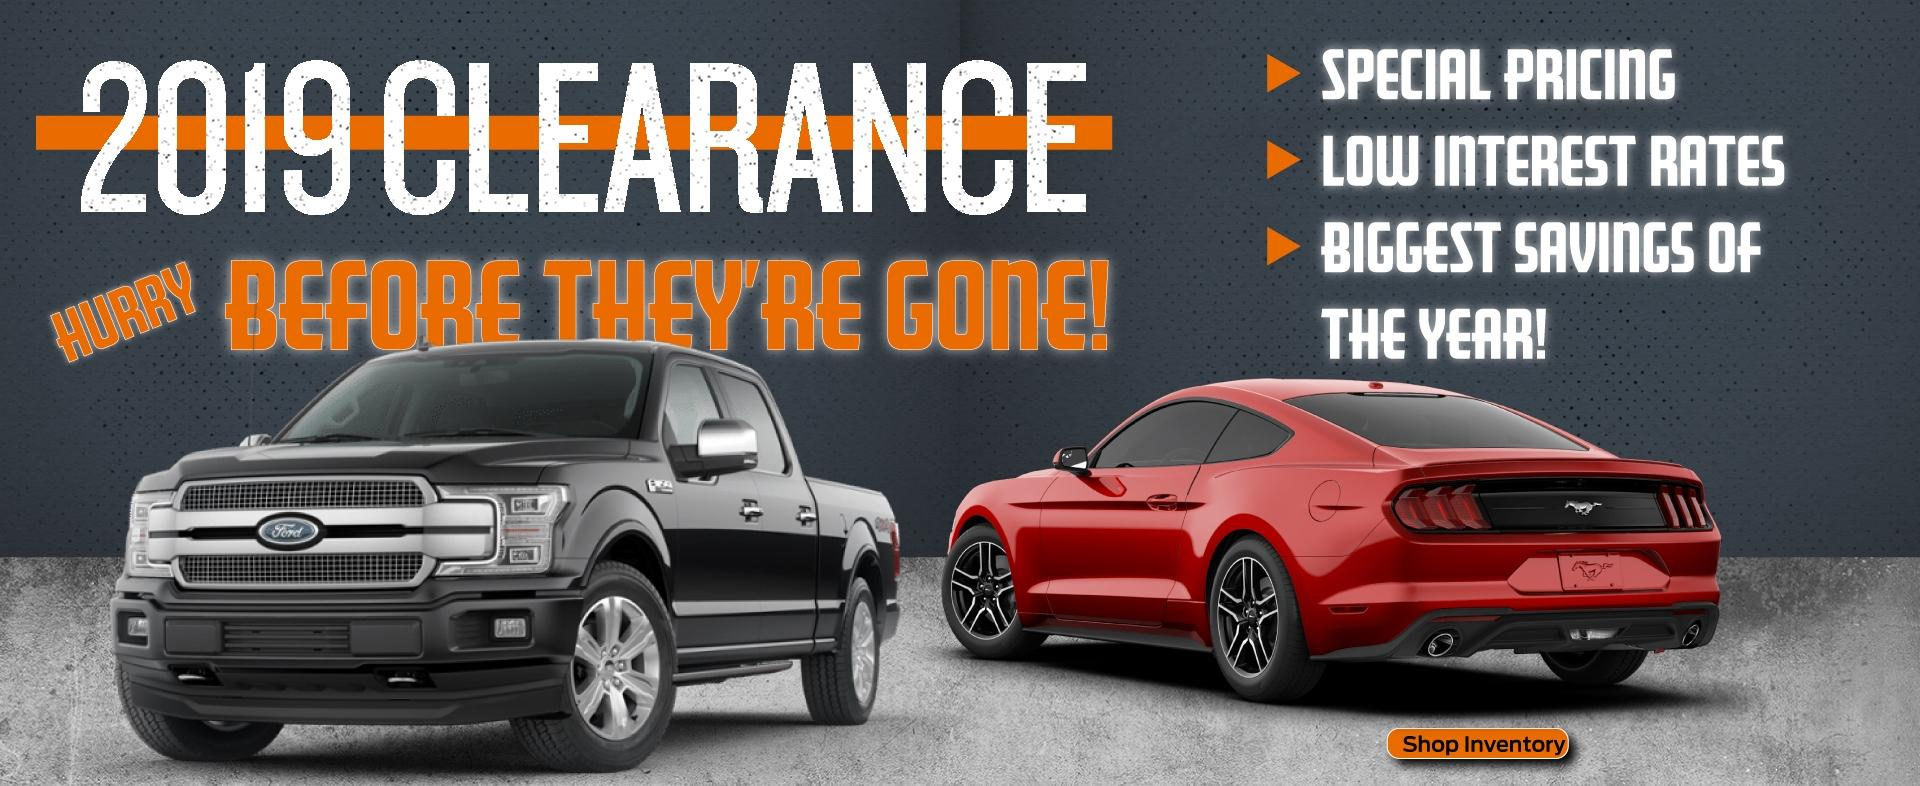 Two Way Service Ford 2019 Clearance